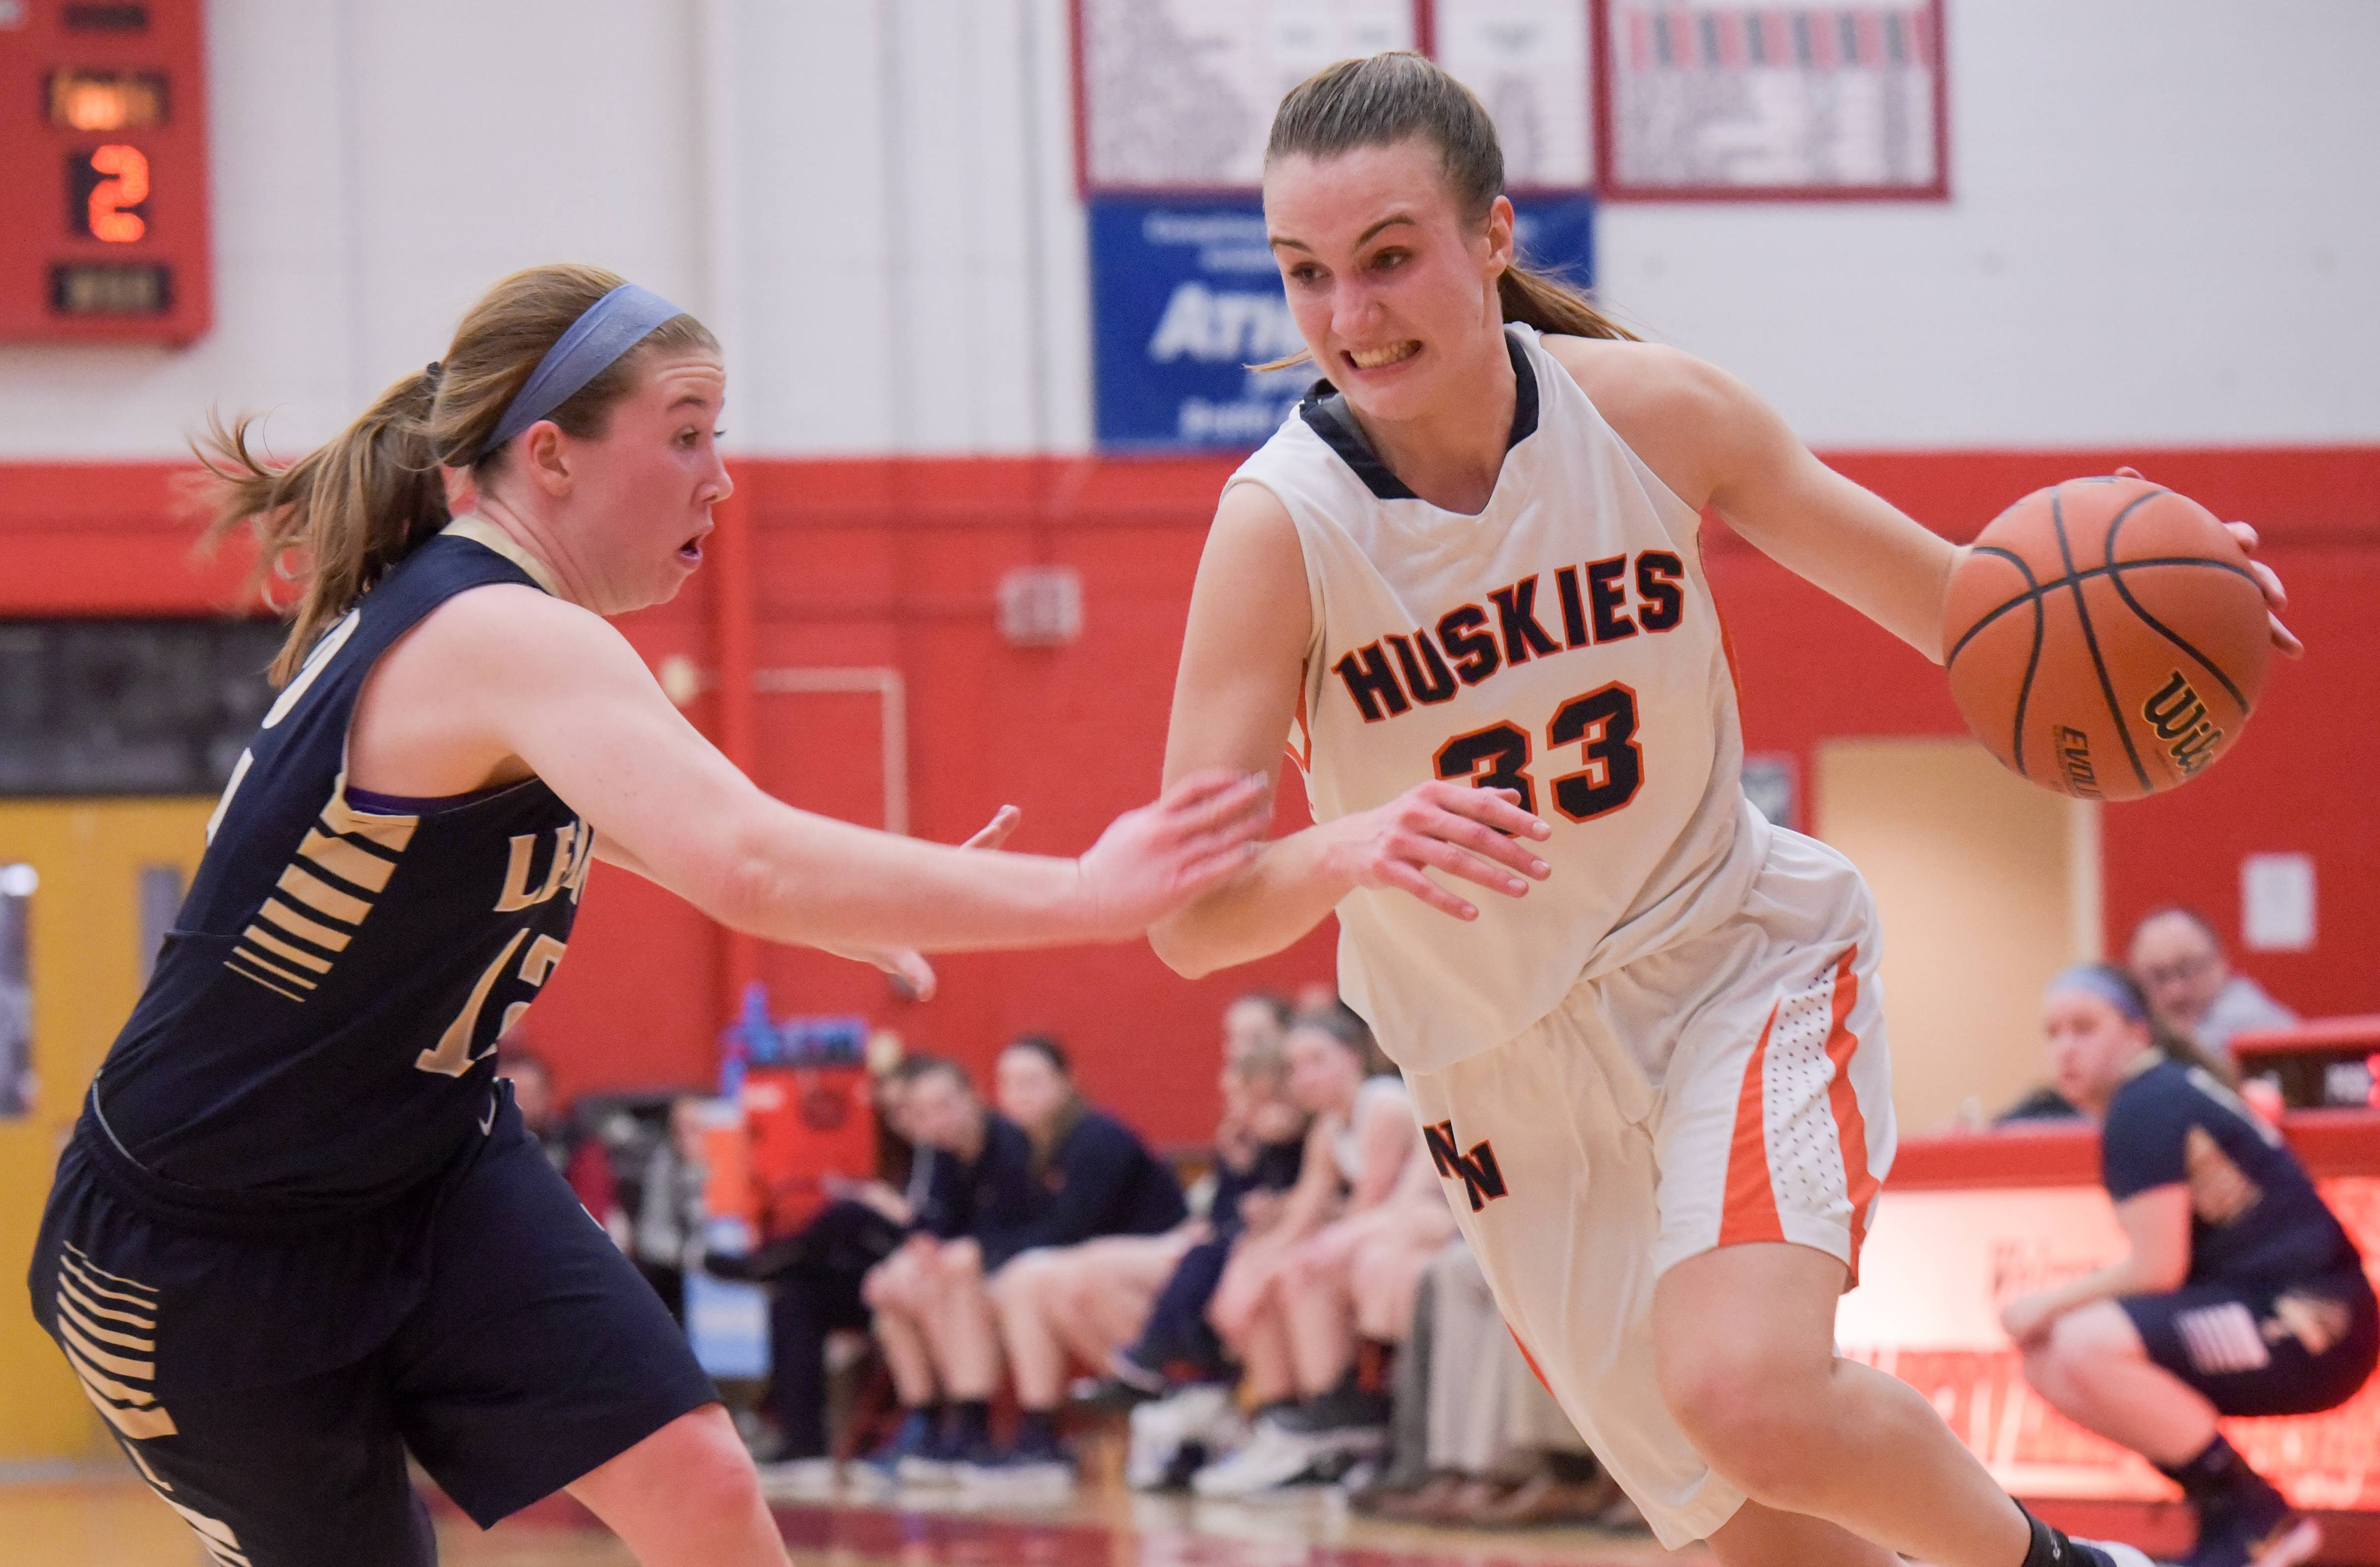 Naperville North's Greta Kampshroeder (33) drives around Lemont's Michelle Jerantowski (12) during the Class 4A girls basketball regional semifinals on February 14, 2018.